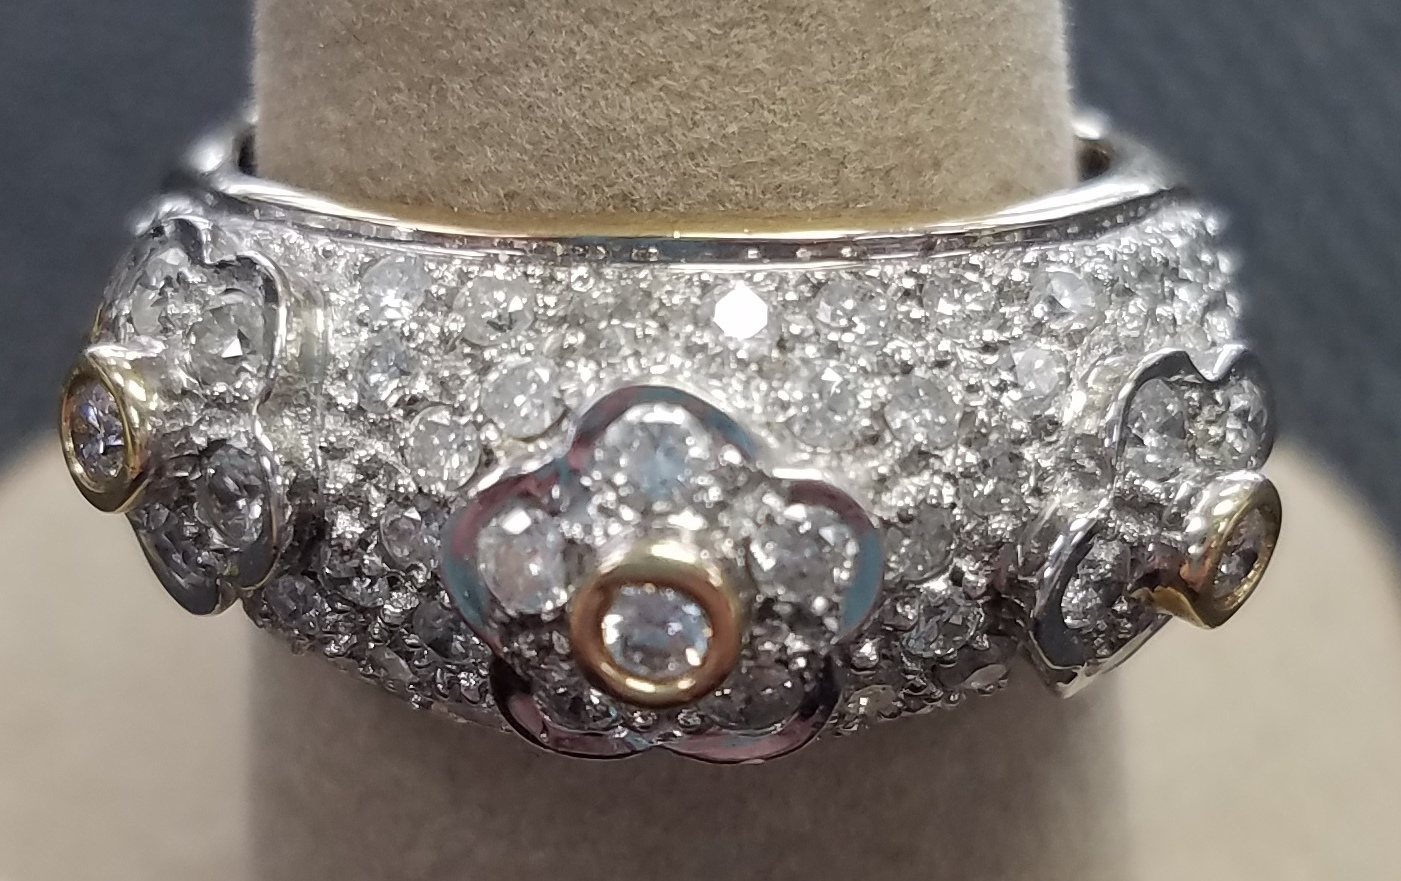 14KT WHITE GOLD SIZE 8 WITH CLUSTER DIAMONDS AND THREE FLOWER DESIGN ACROSS